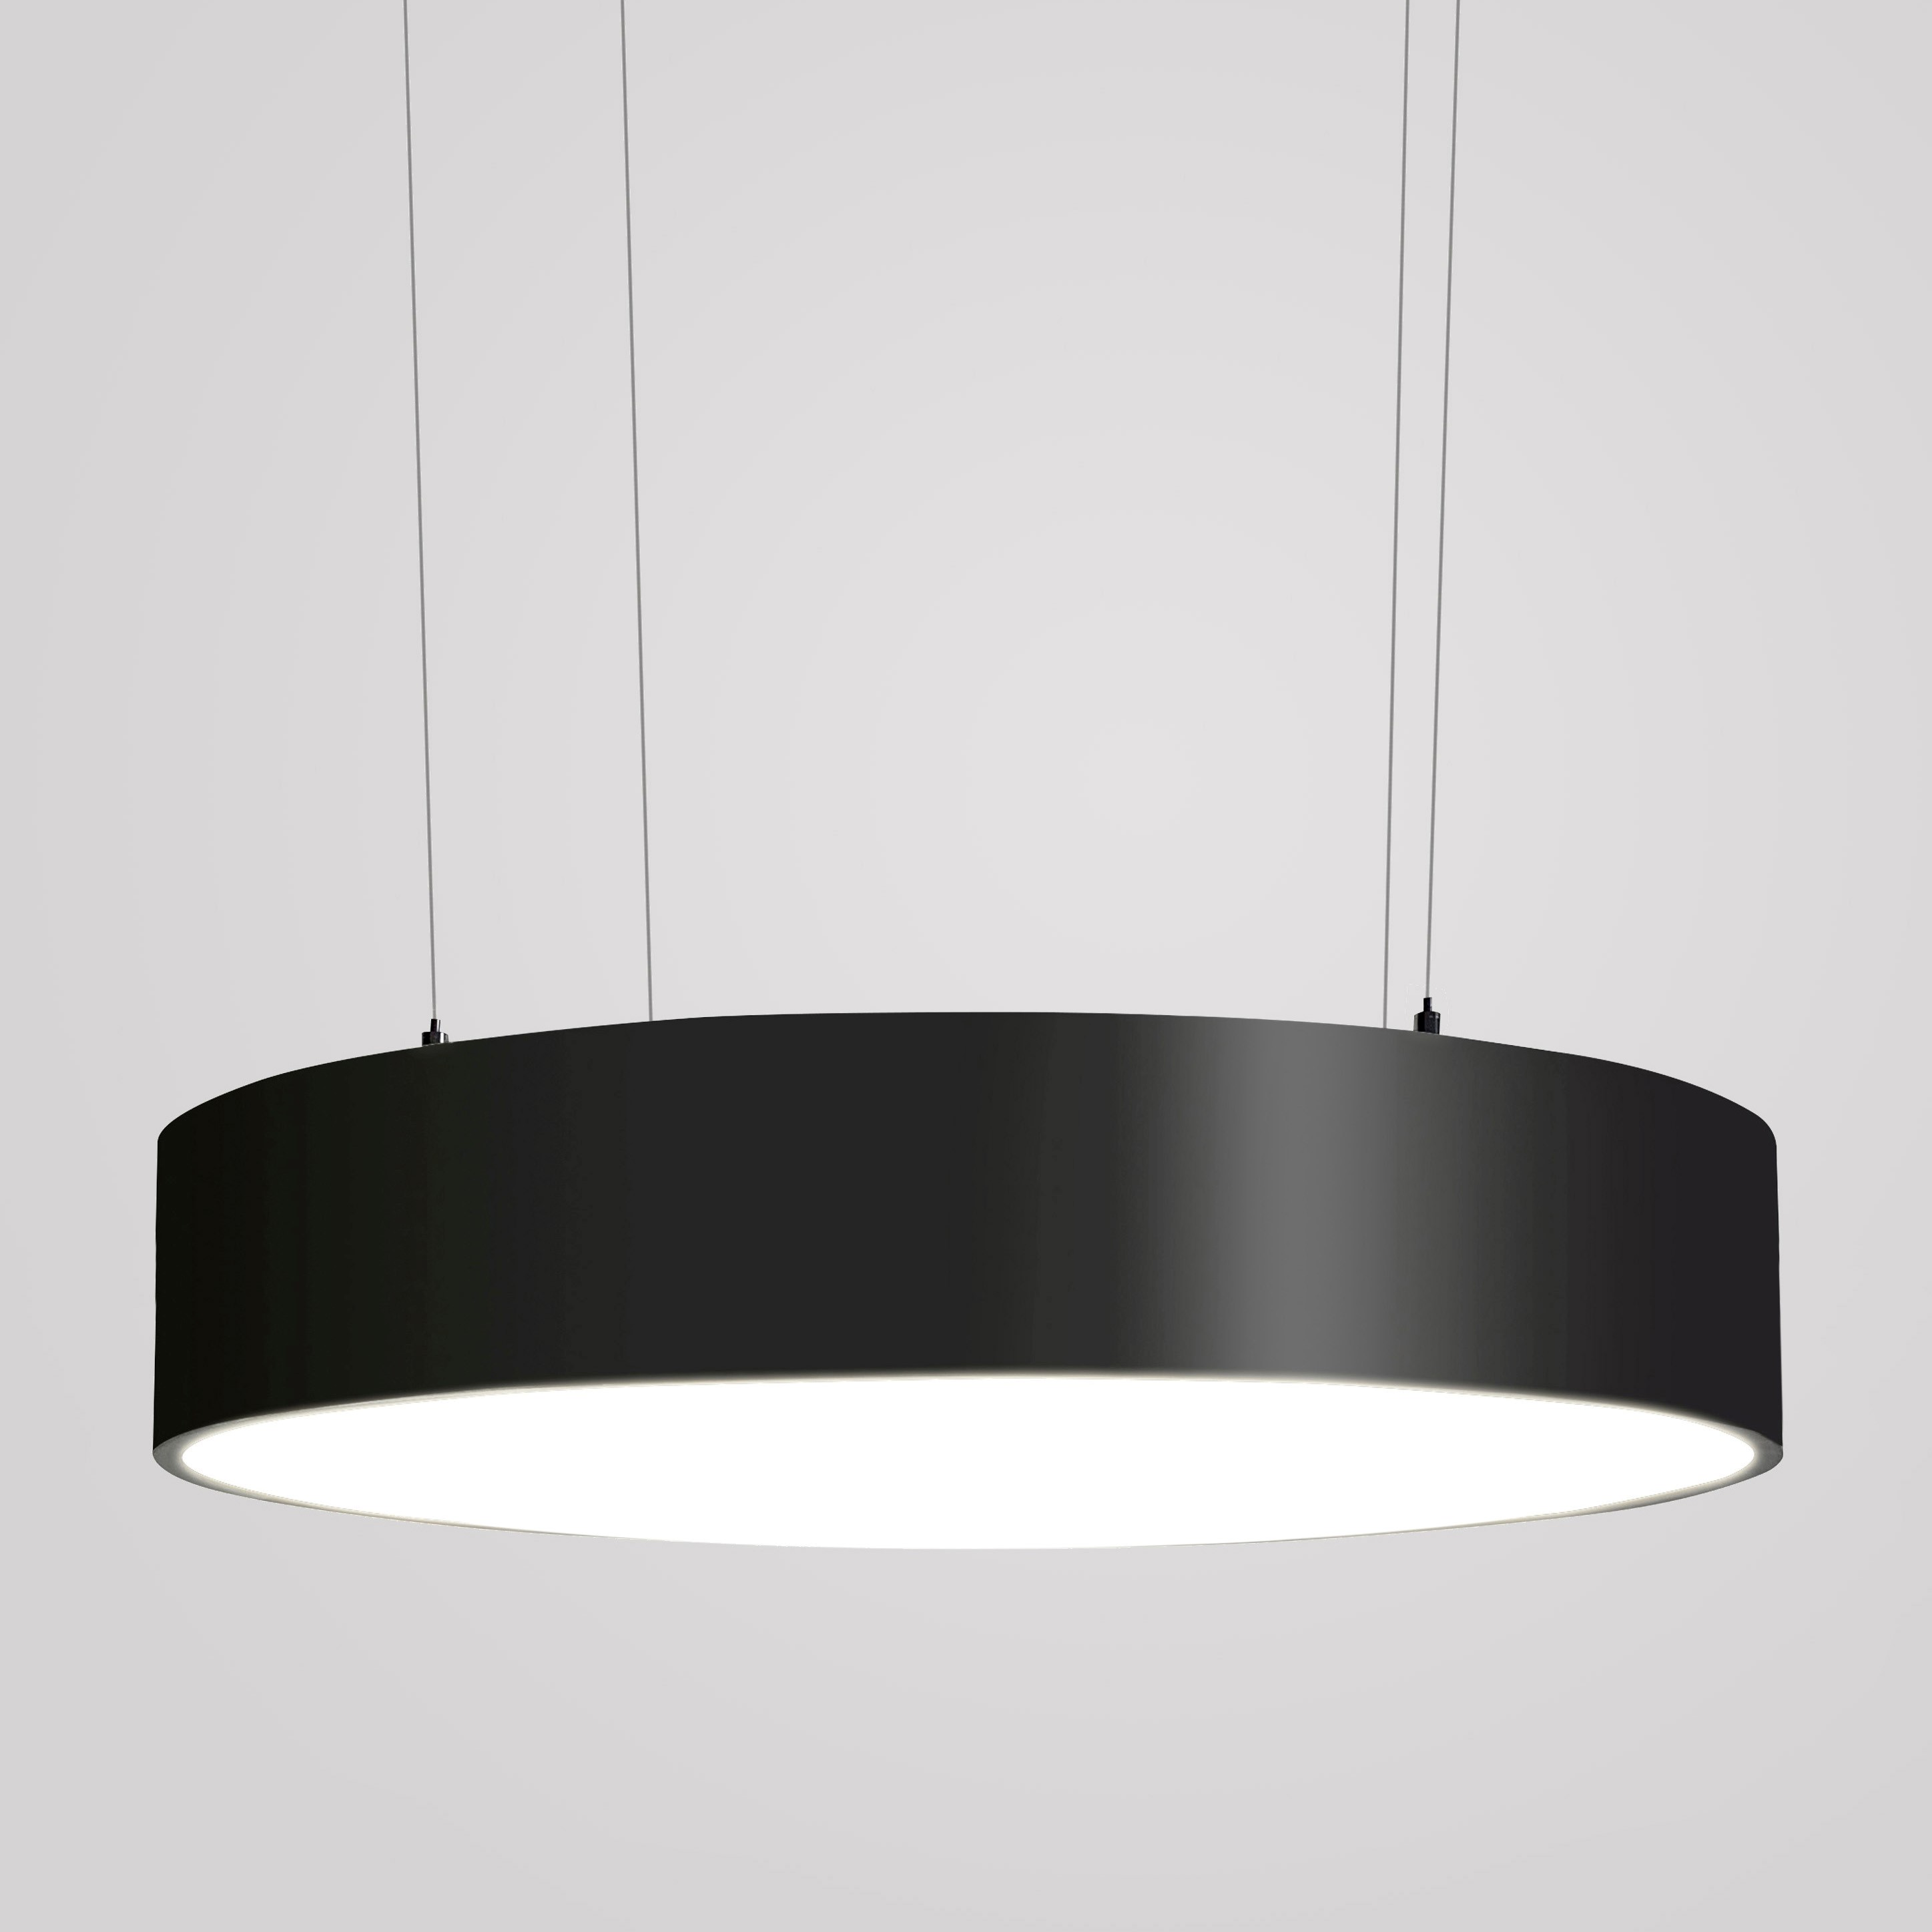 Luminaires of the series BELO_BE_110